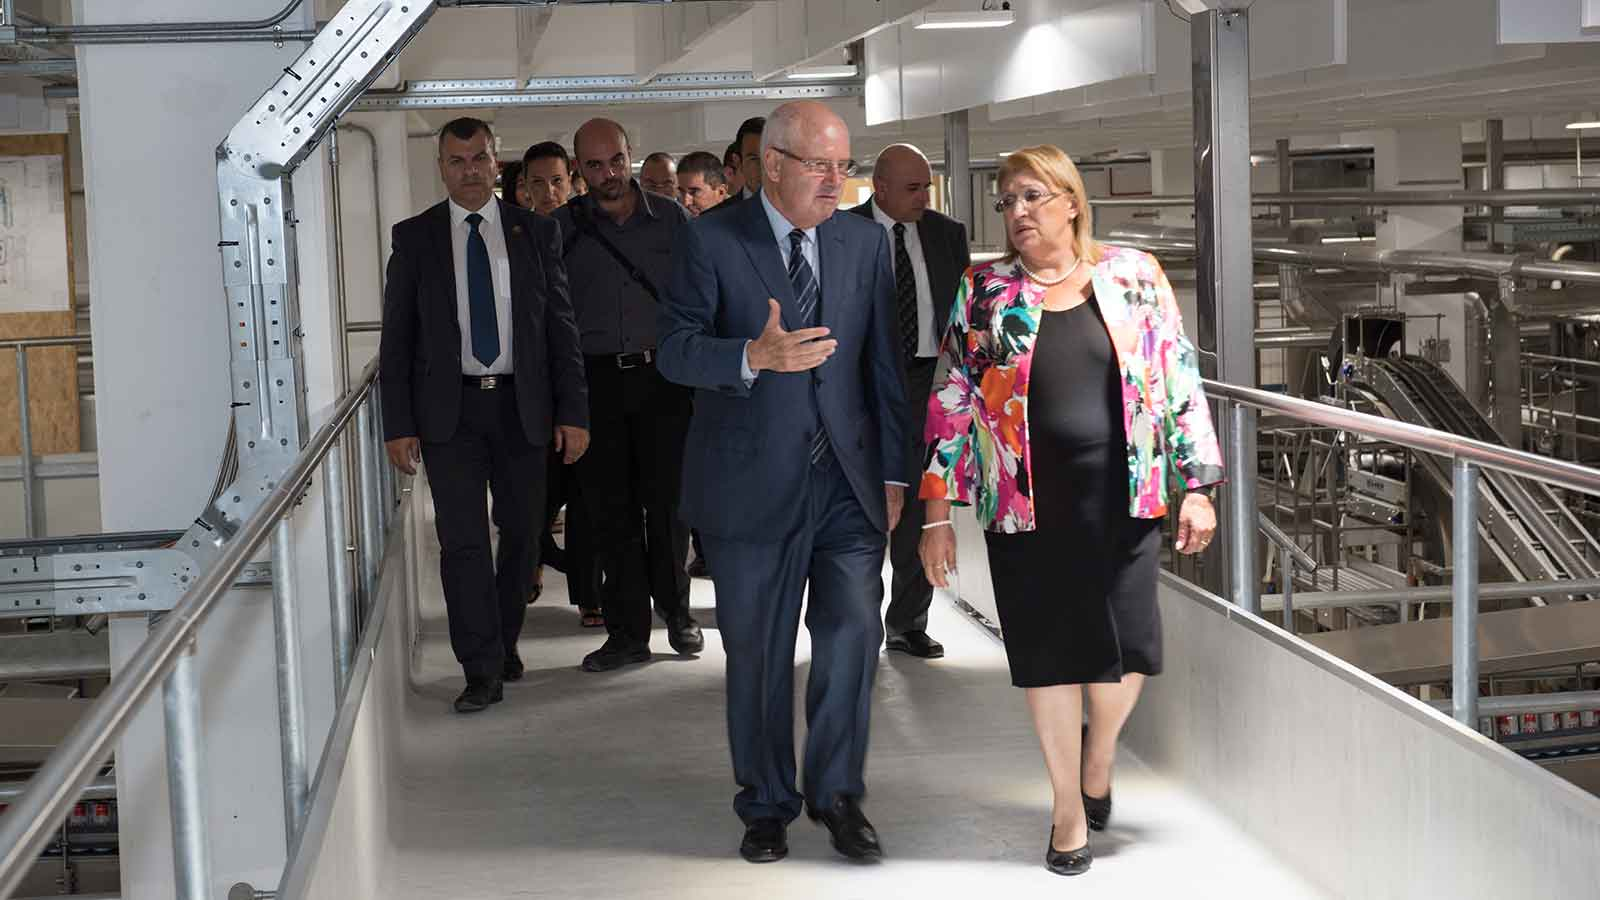 HE The President of Malta visits Farsons Brewery